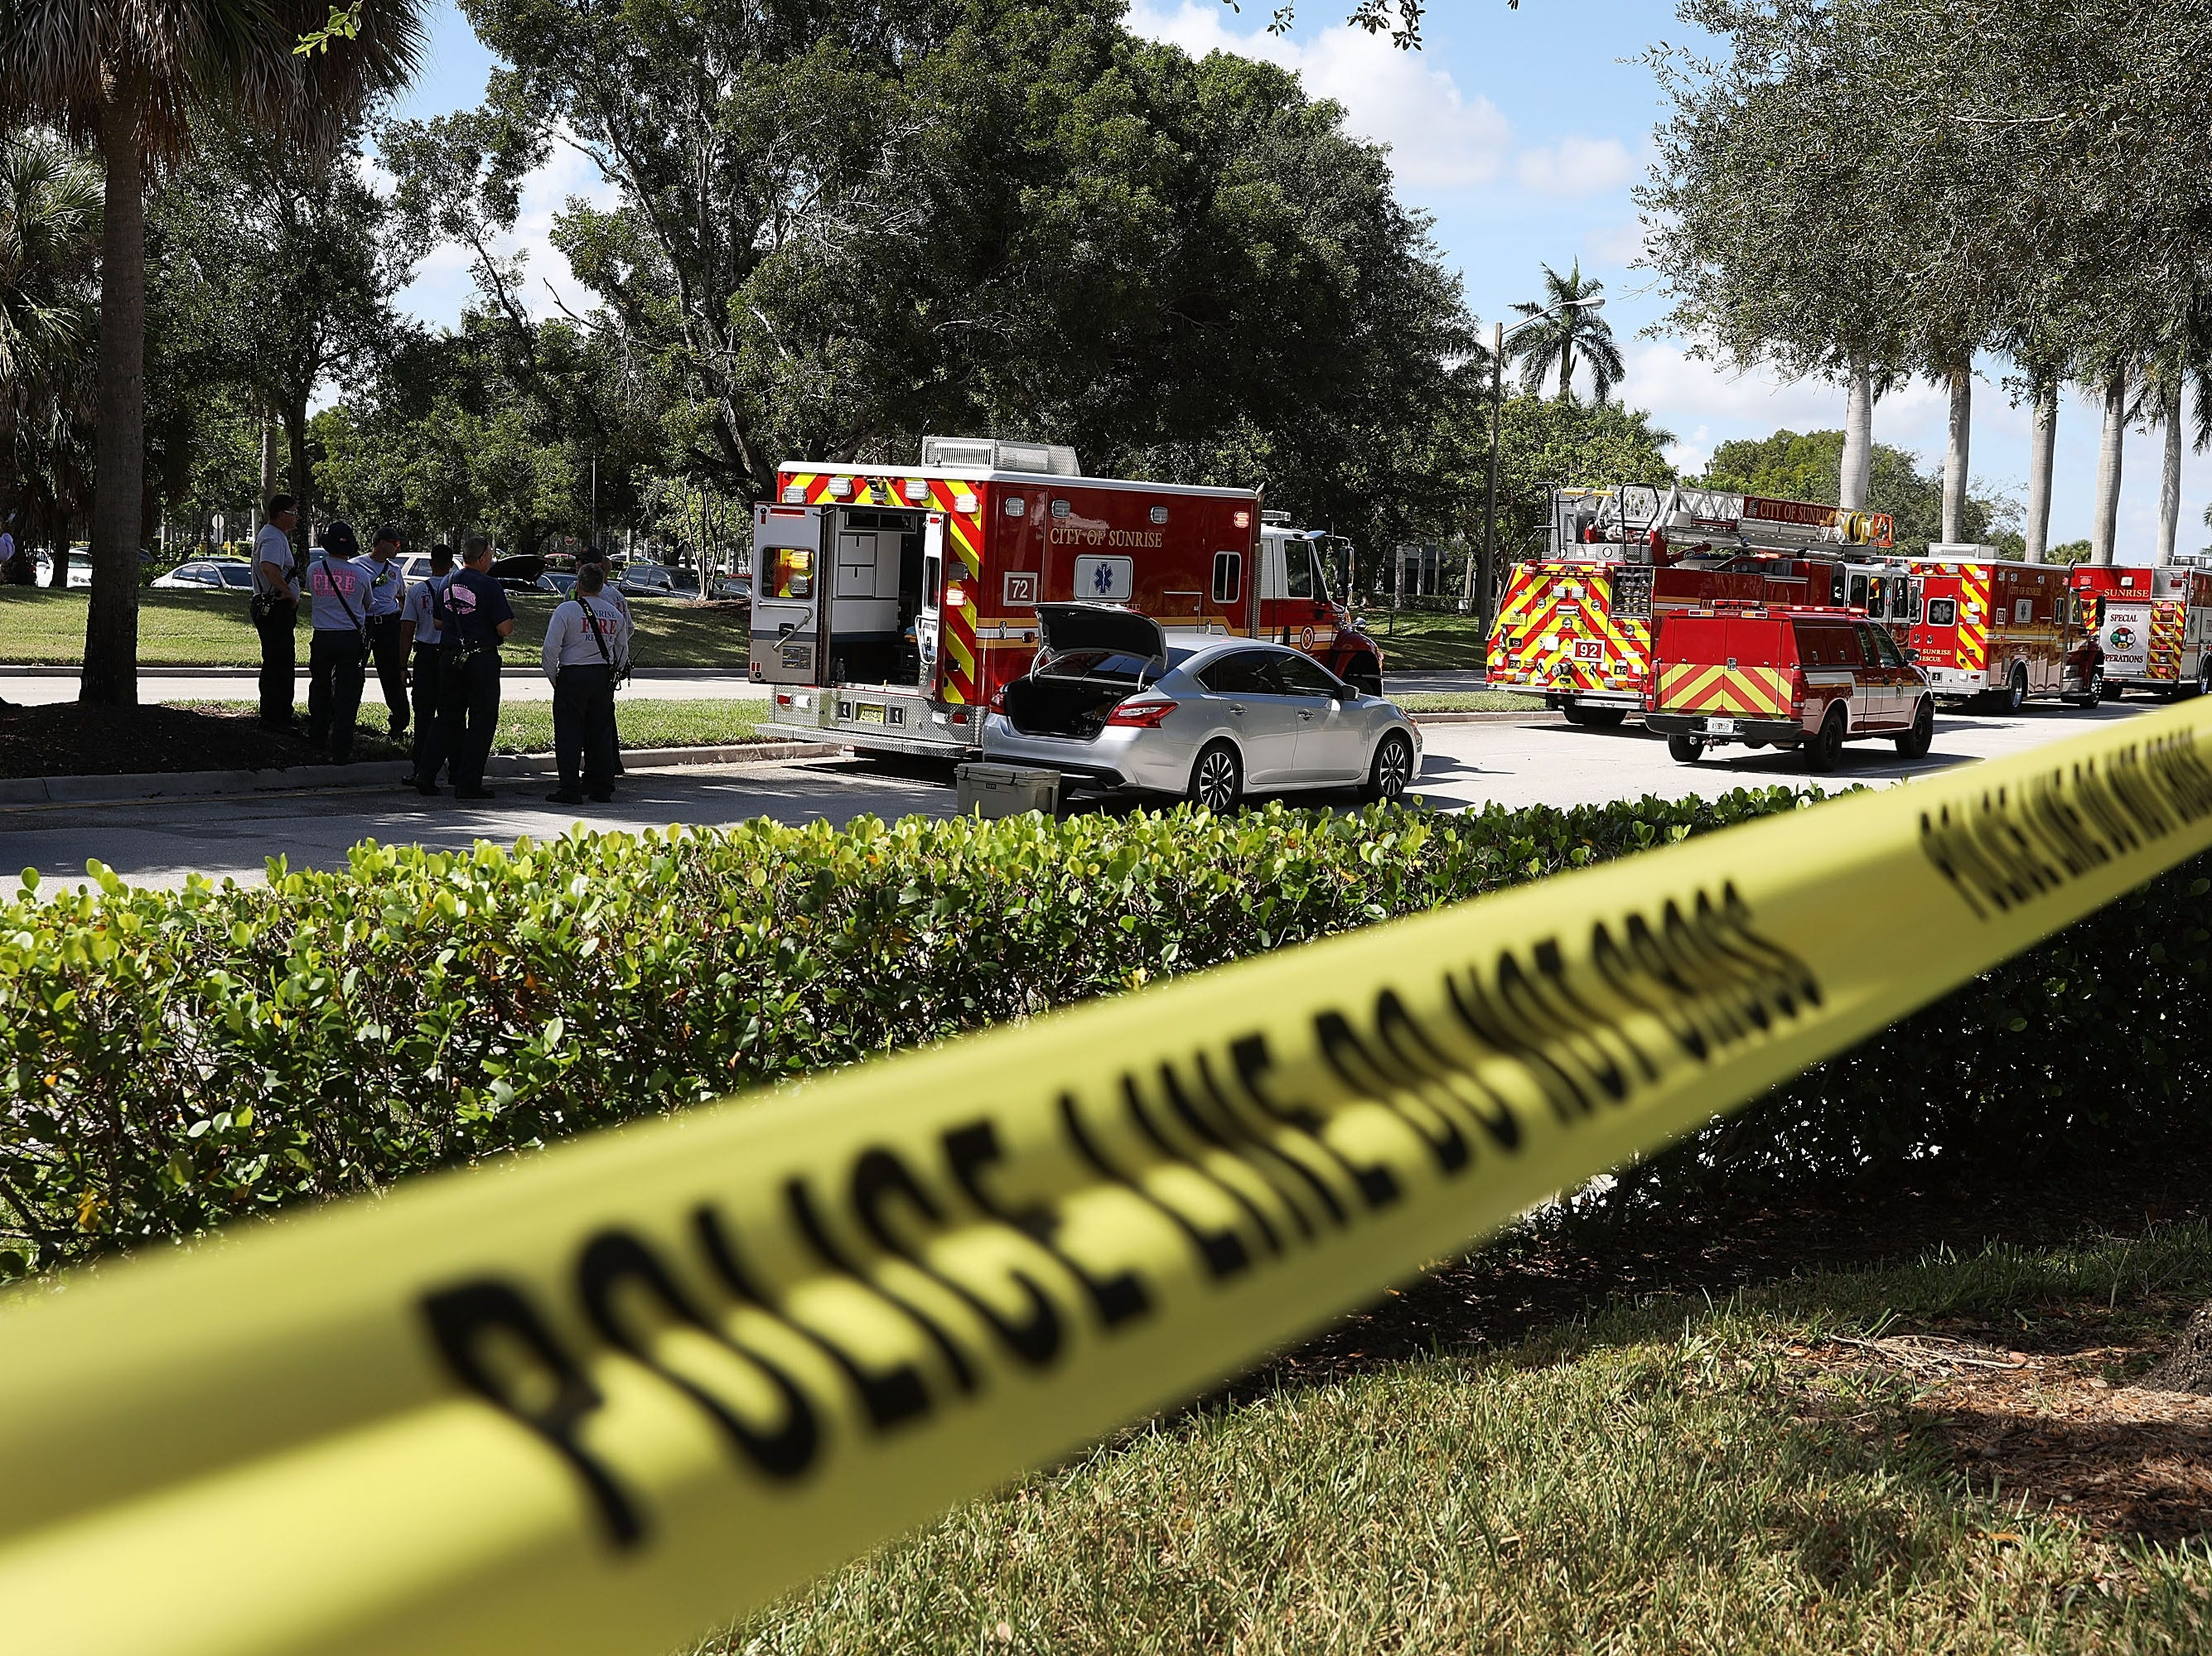 SUNRISE, FL - OCTOBER 24:  Police tape keeps people back as the The Broward Sheriff's Office bomb squad deploys a robotic vehicle to investigate a suspicious package in the building where Rep. Debbie Wasserman Schultz (D-FL) has an offce on October 24, 2018 in Sunrise, Florida.  A number of suspicious packages arrived in the mail today intended for former President Barack Obama, Democratic presidential nominee Hillary Clinton and the New York office of CNN. (Photo by Joe Raedle/Getty Images) ORG XMIT: 775248002 ORIG FILE ID: 1052941258